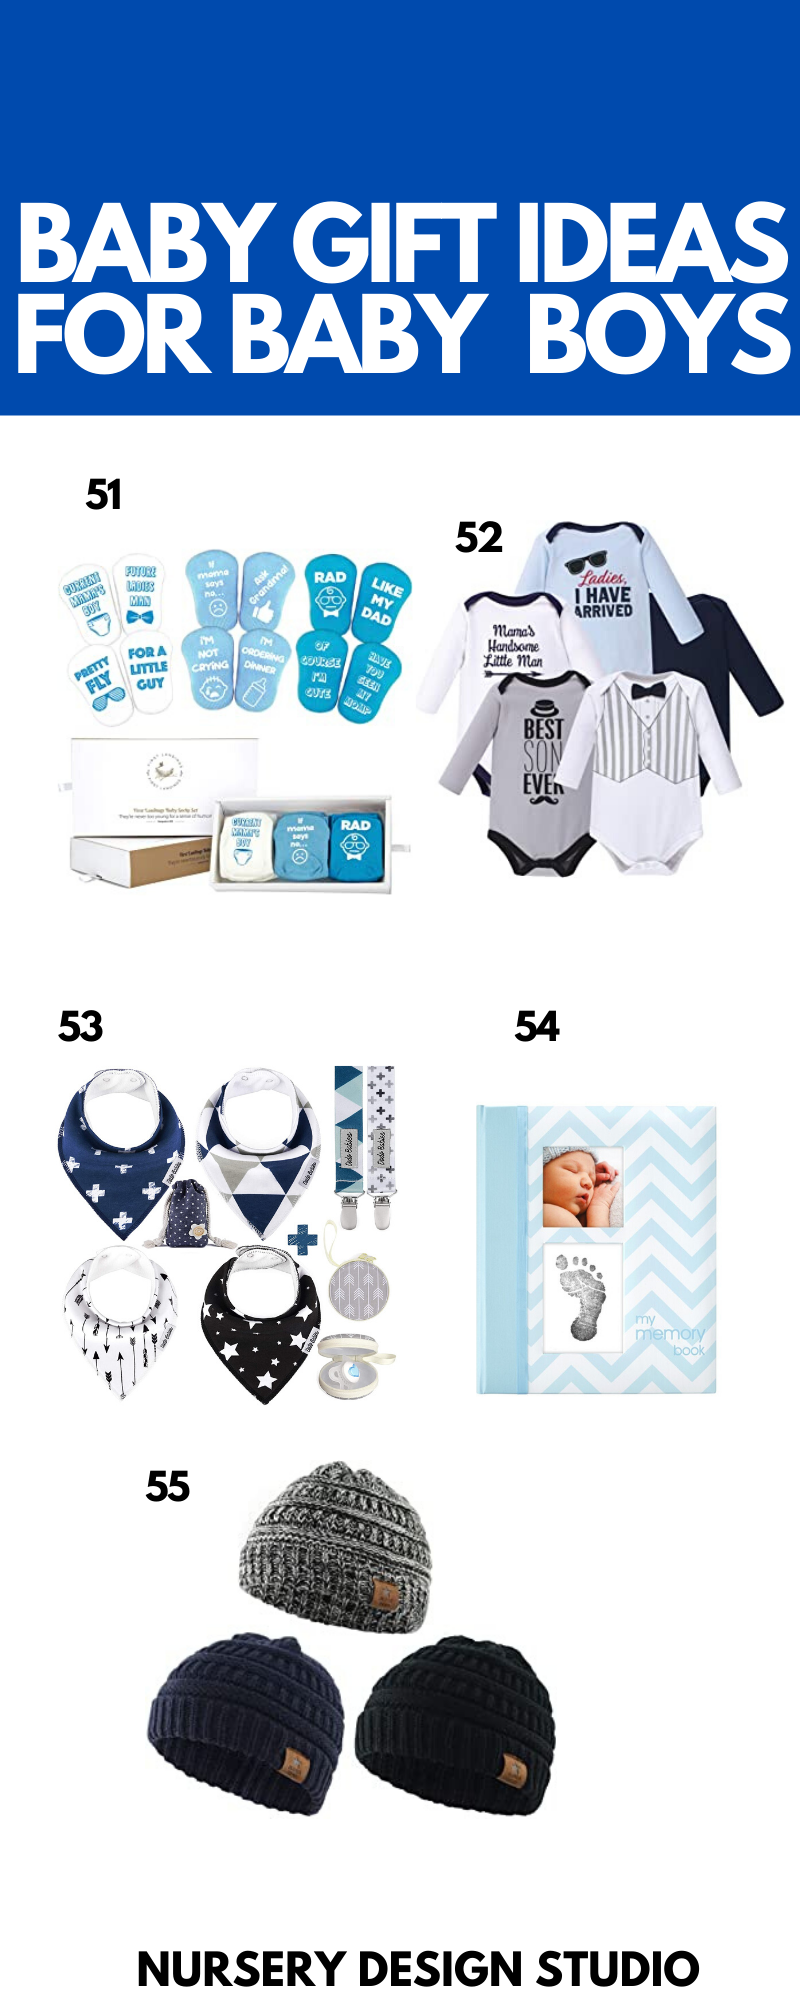 BABY GIFT IDEAS FOR BABY BOYS